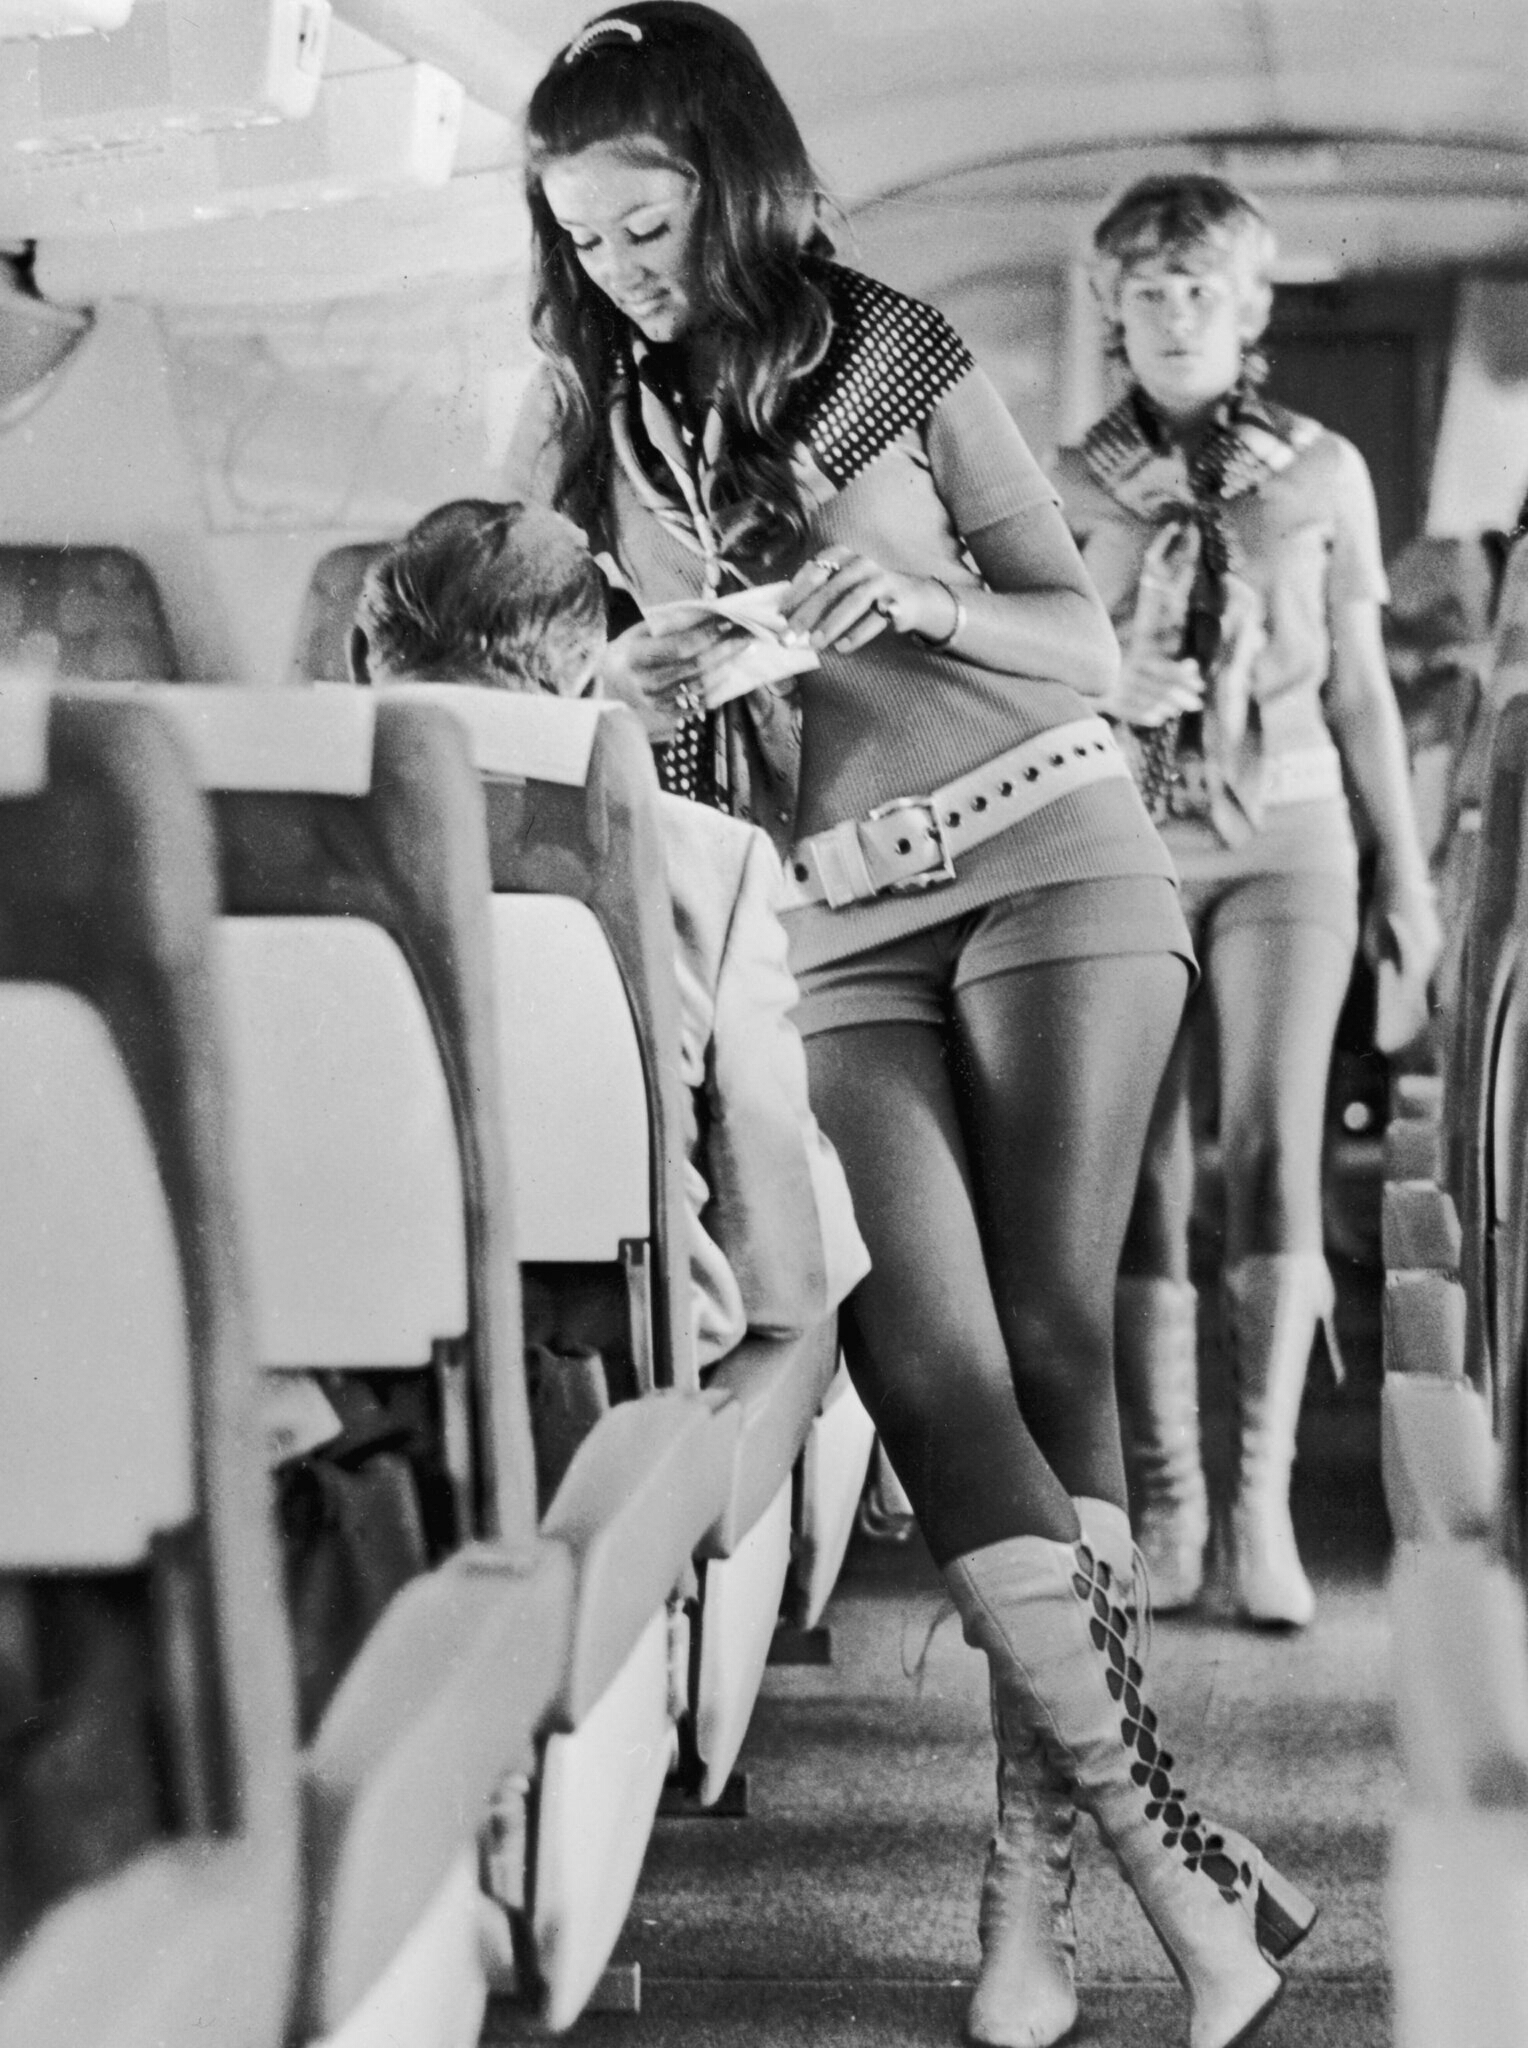 Southwest Airlines Flight Attendants From 1972